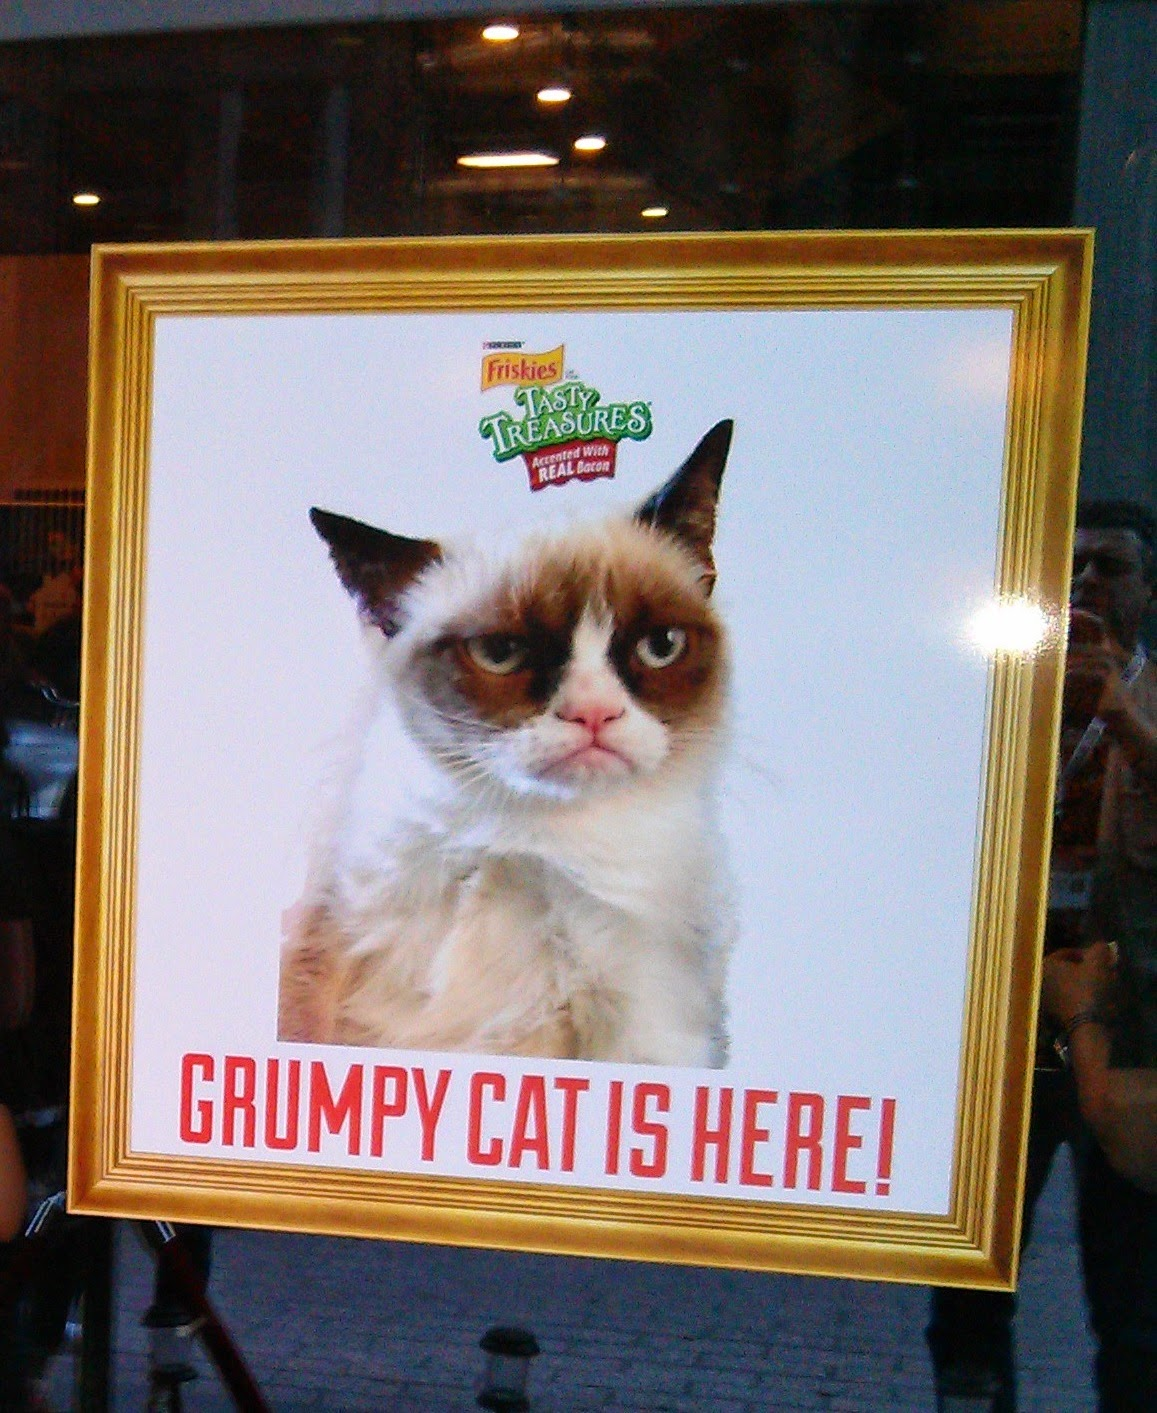 Internet star Grumpy Cat at SXSW